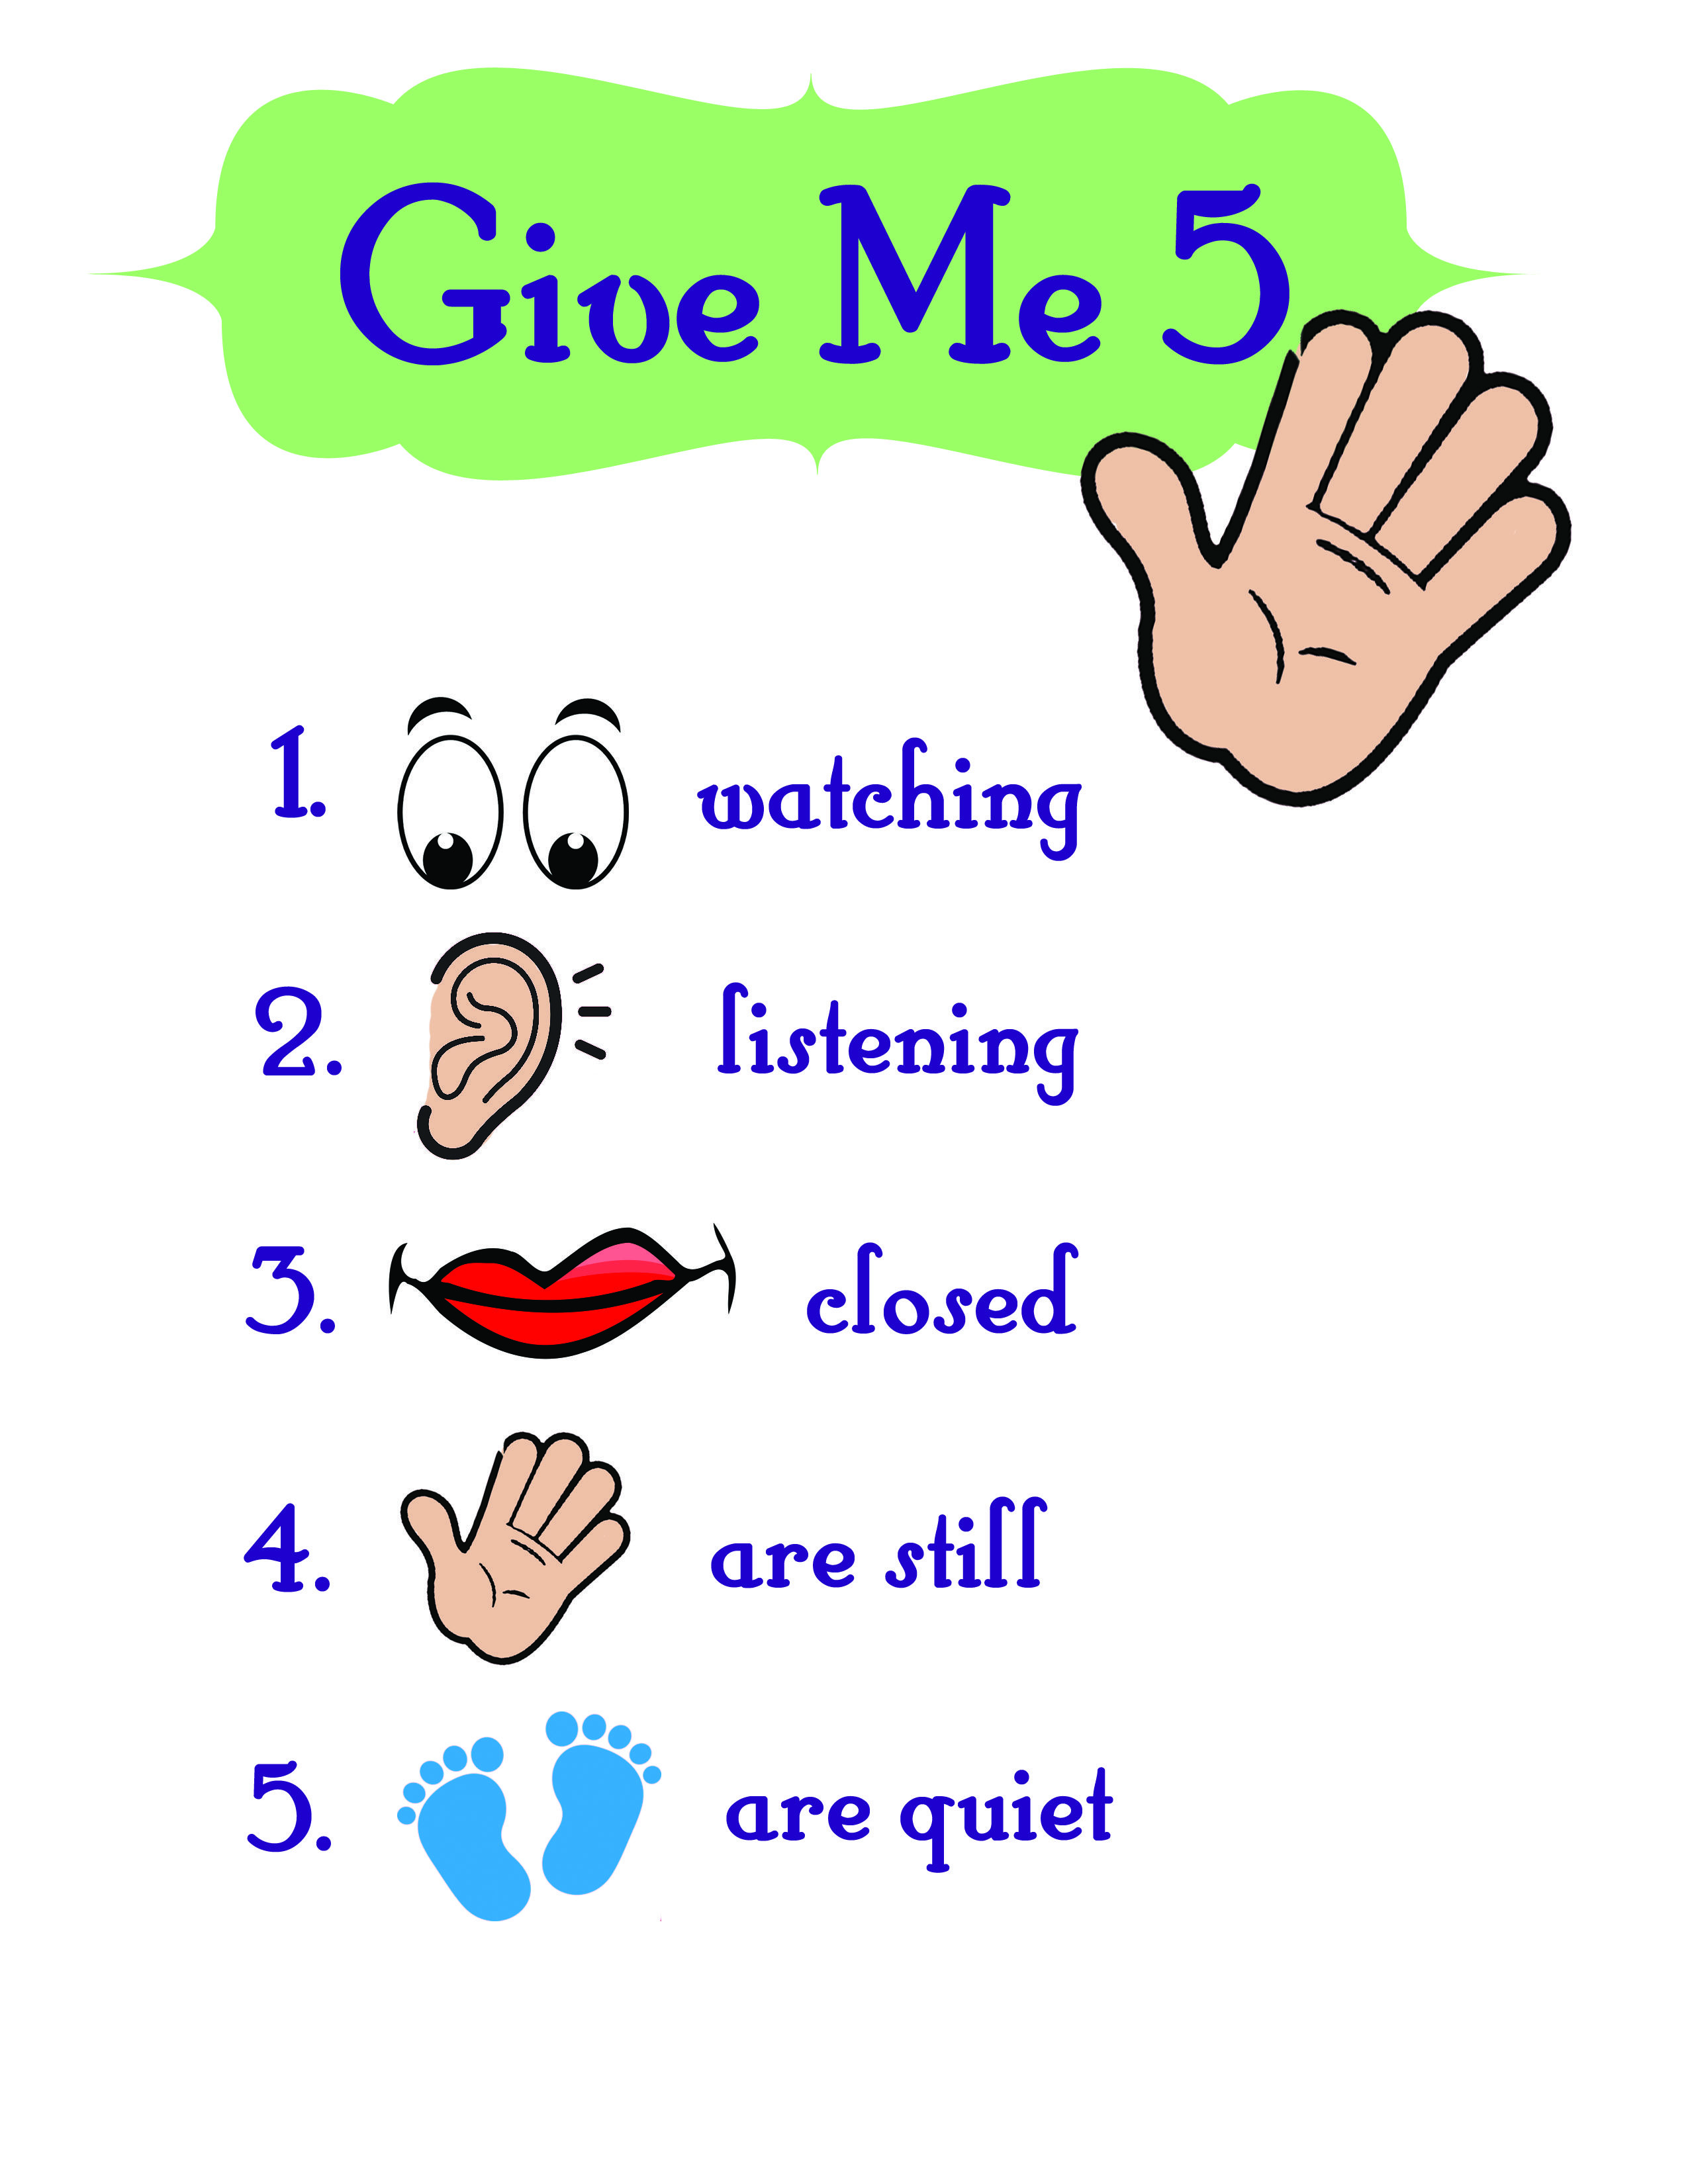 Give Me 5 Obe Nce Chart For Class Settings Or Group Teaching